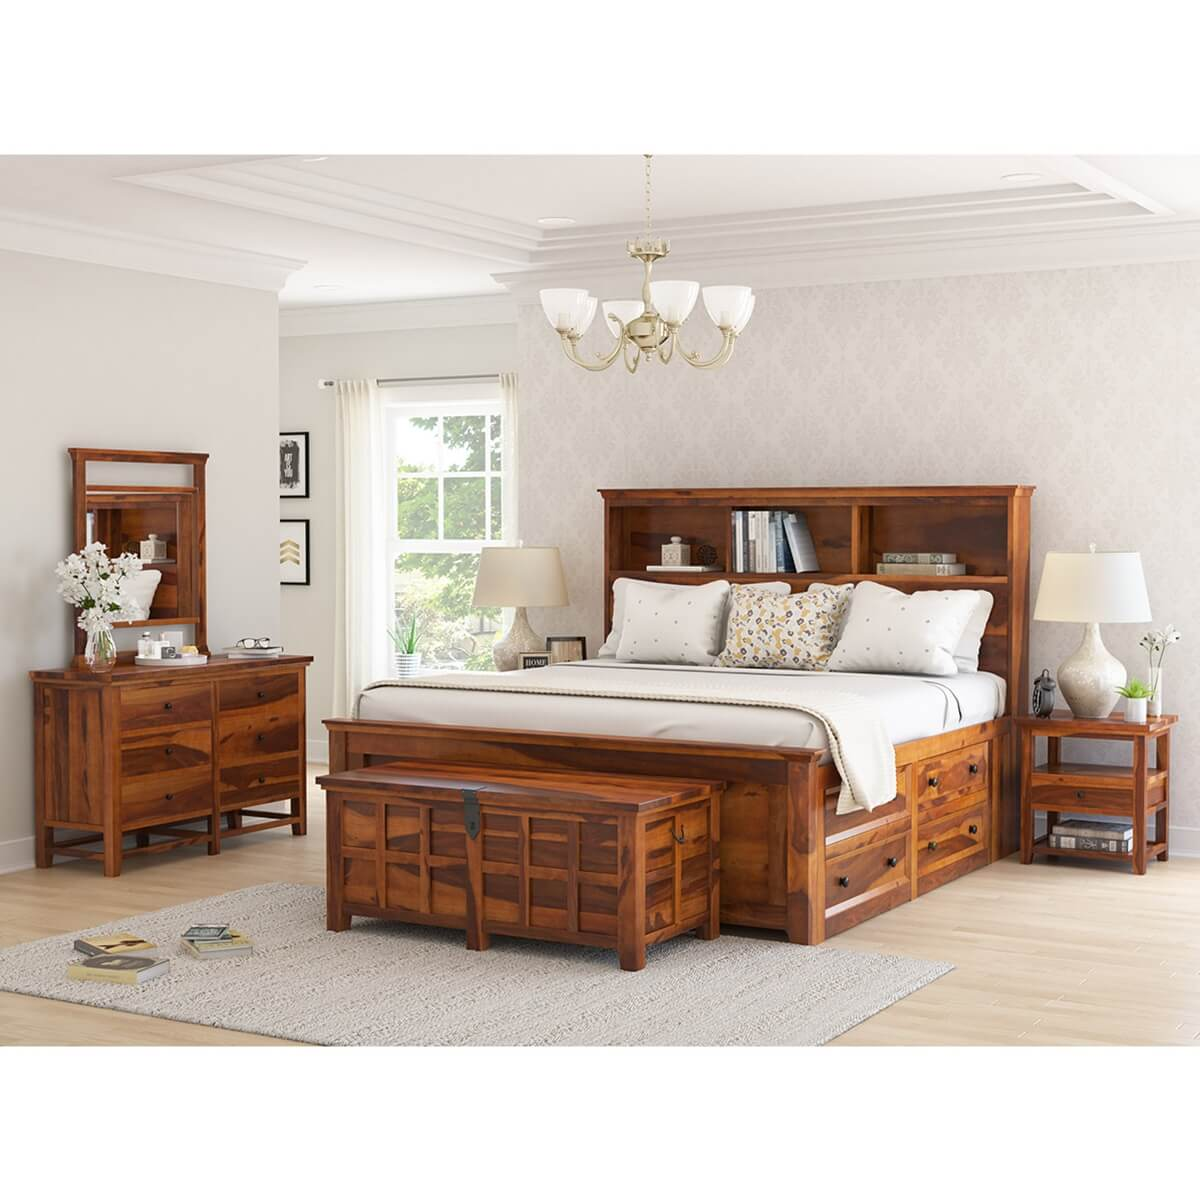 Mission modern solid wood king size platform bed 7pc - Contemporary king bedroom furniture ...